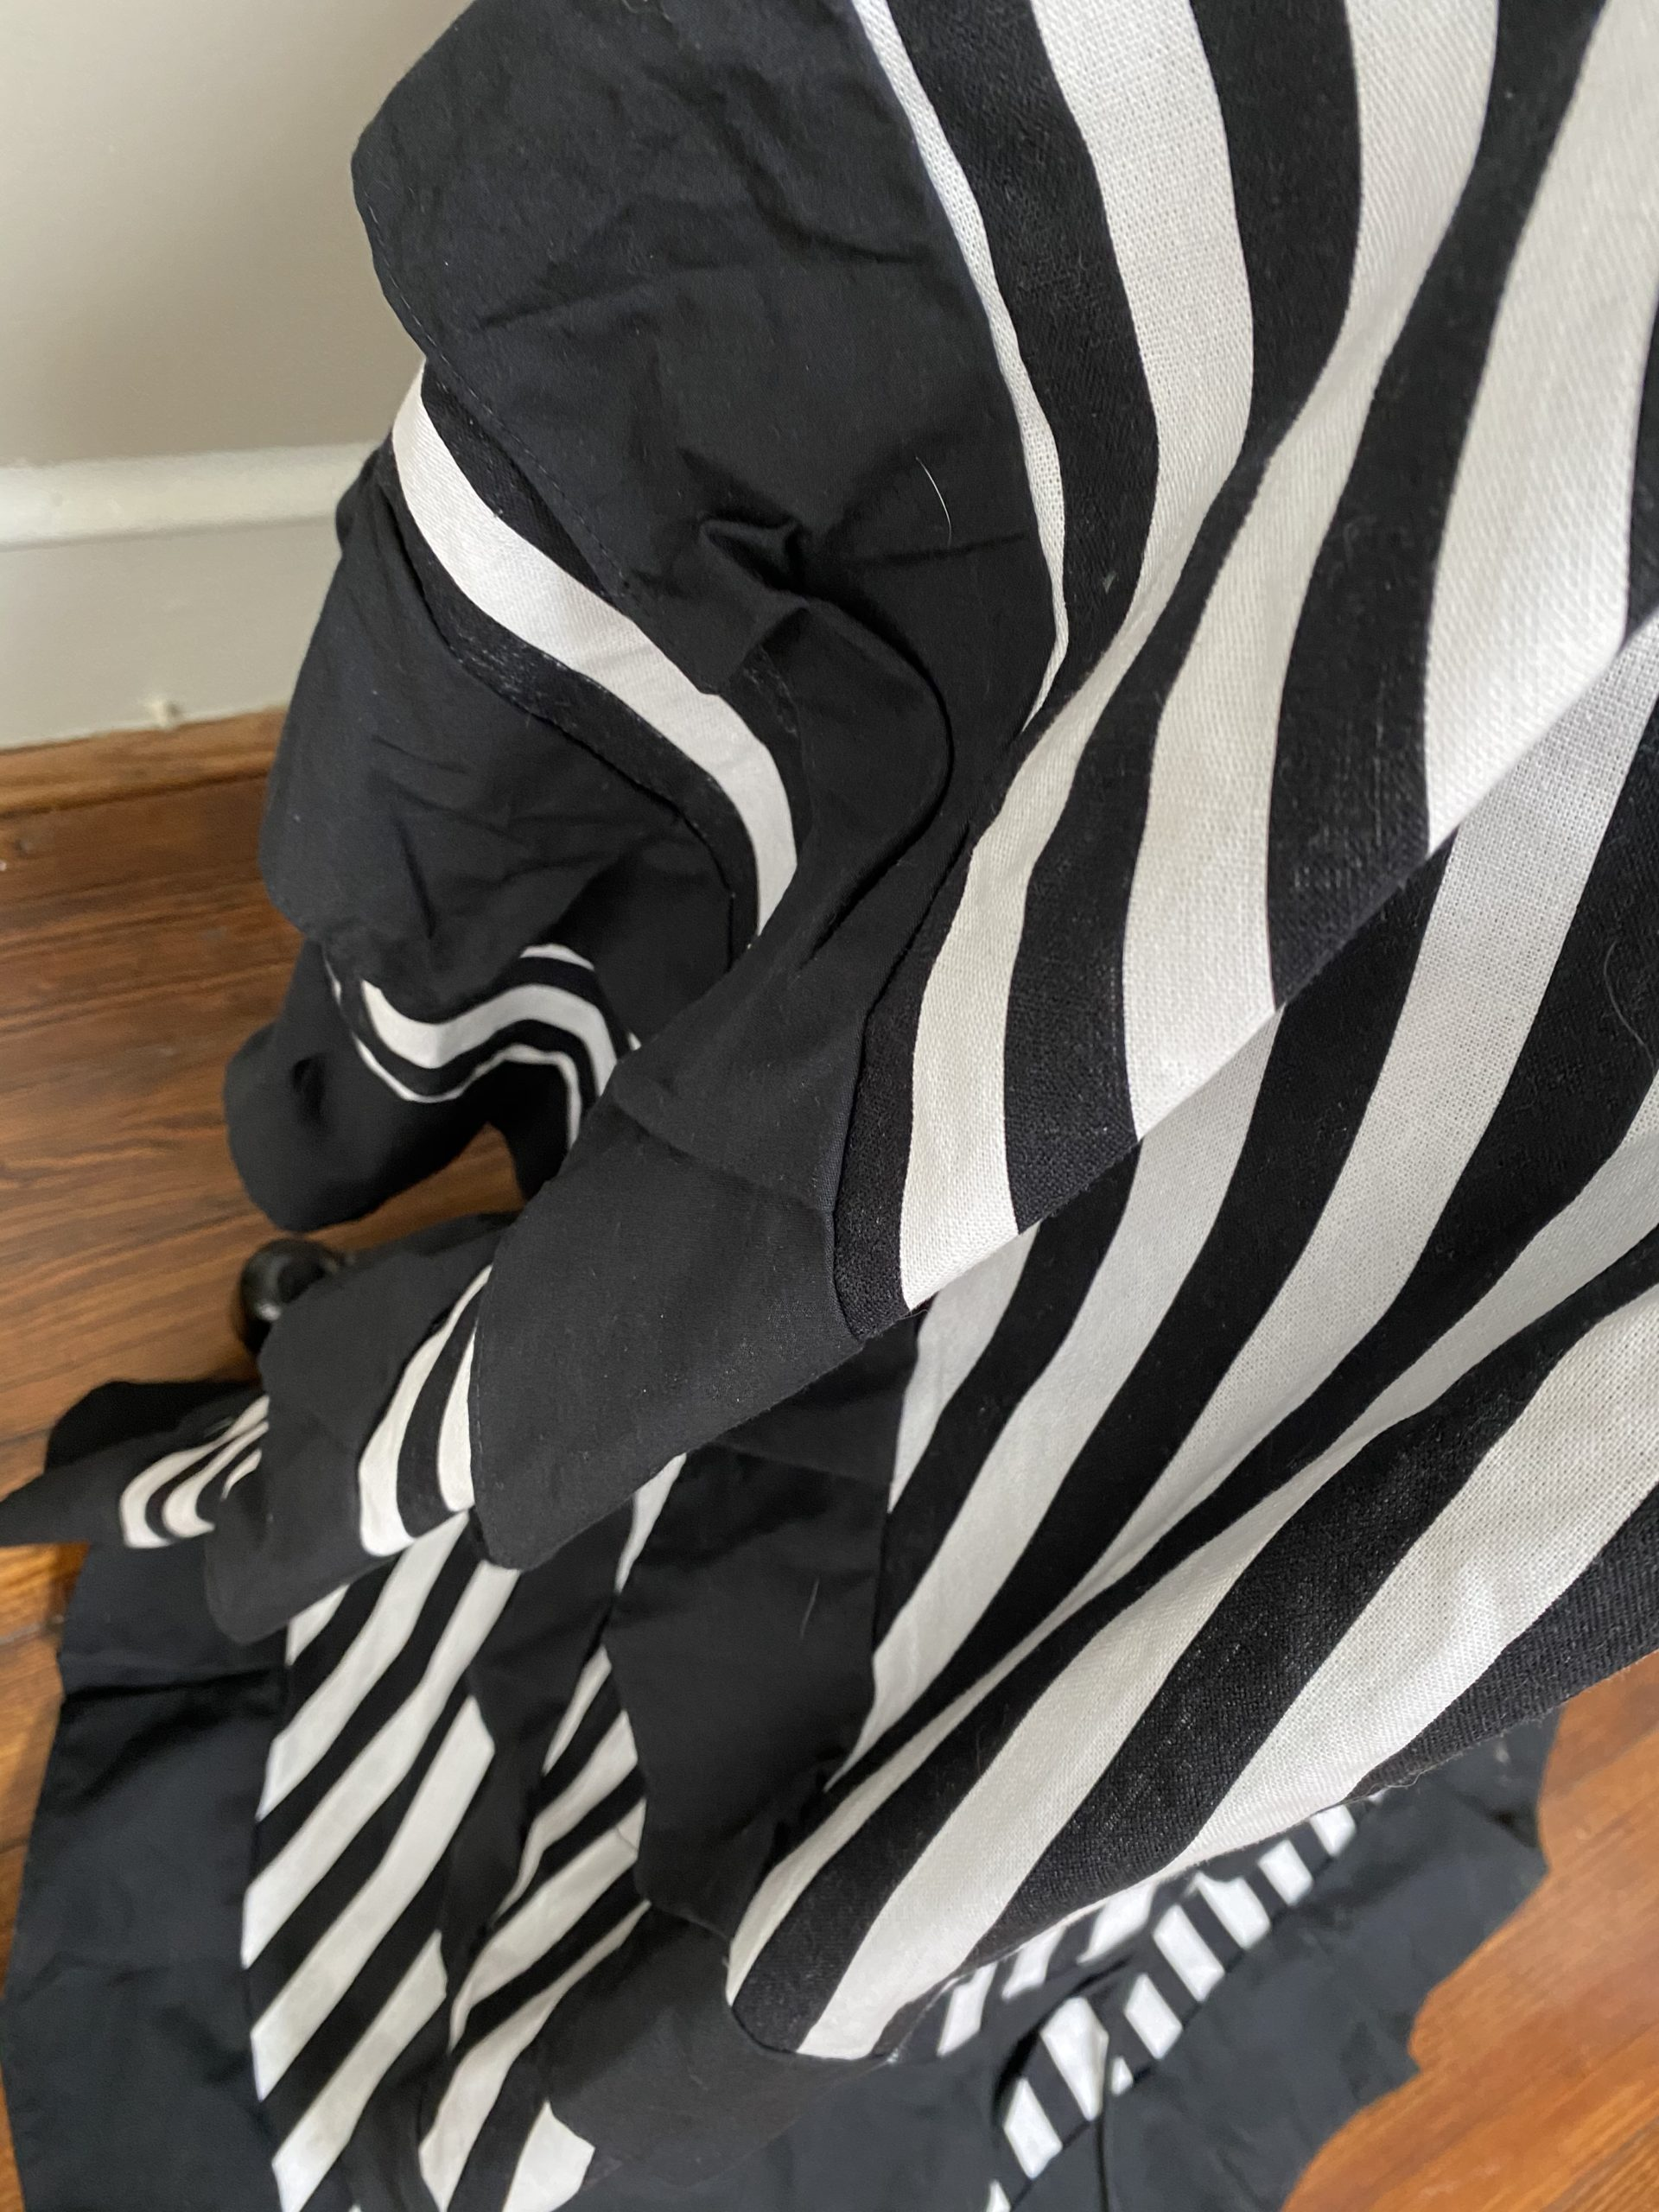 Black and White Striped Victorian skirt